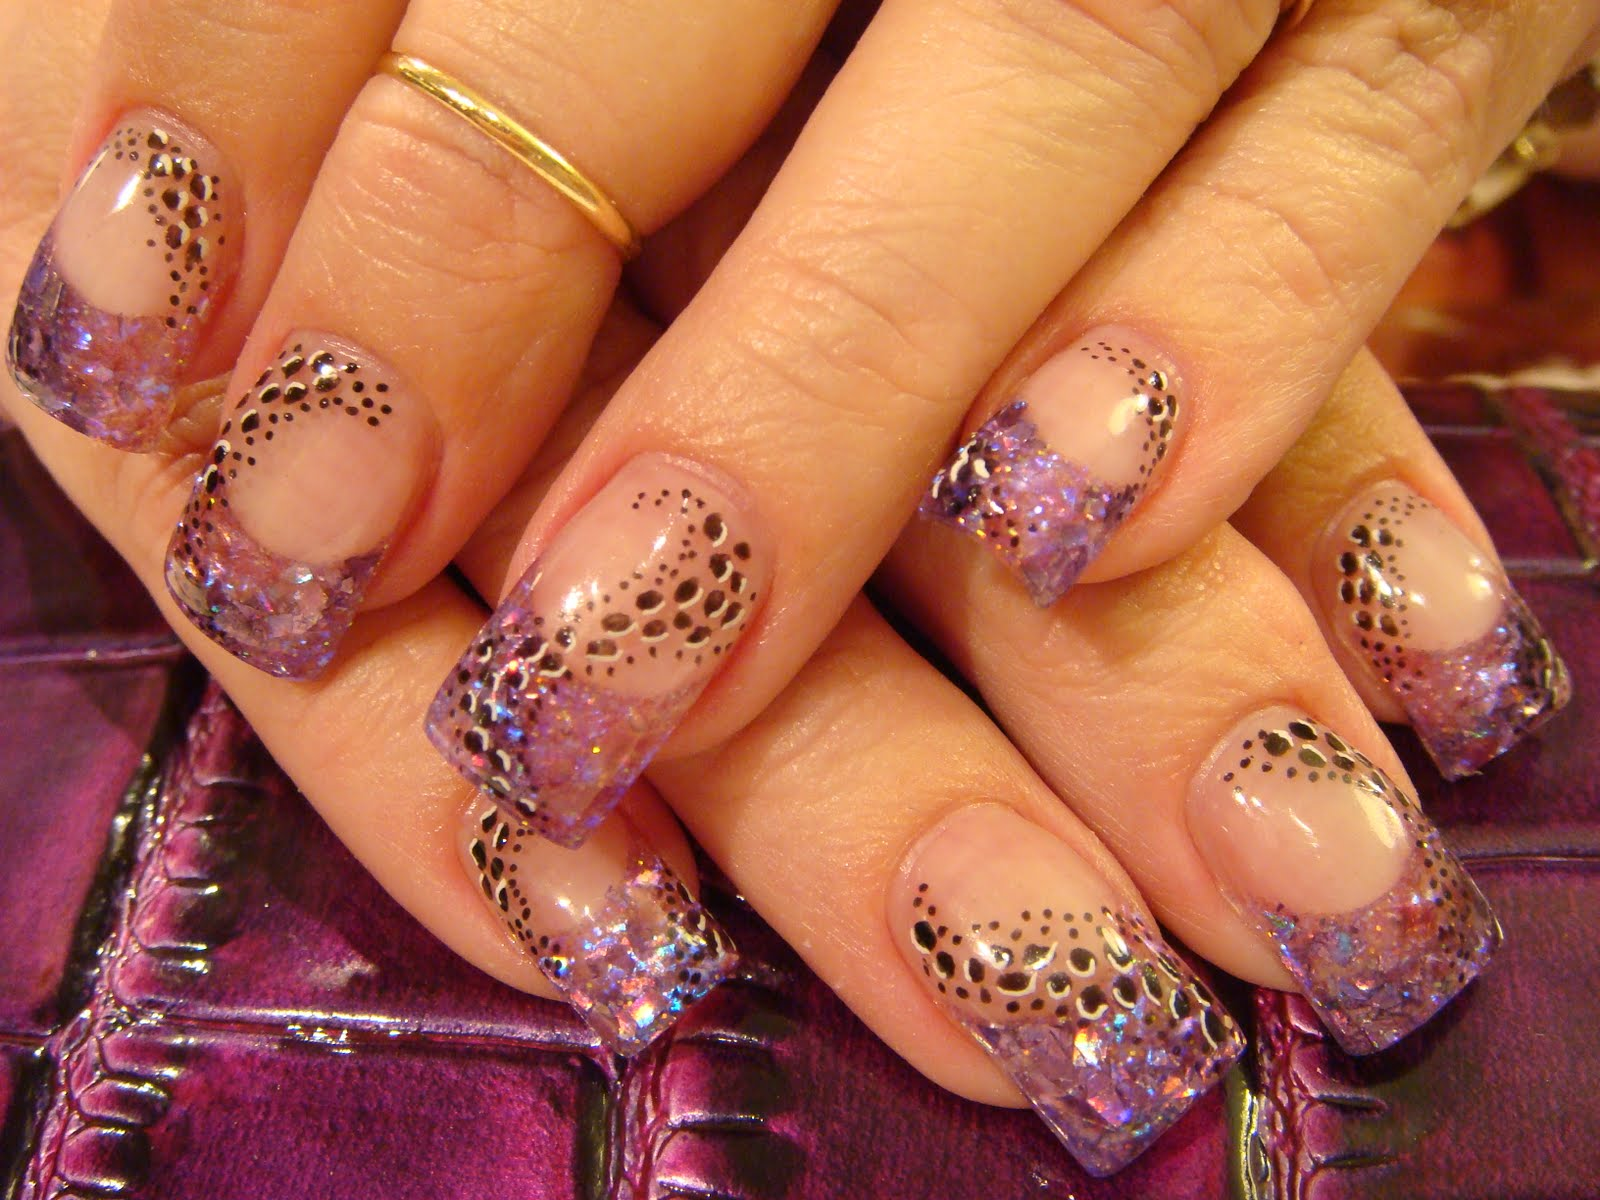 vioola-blog: cute nail designs fashionable